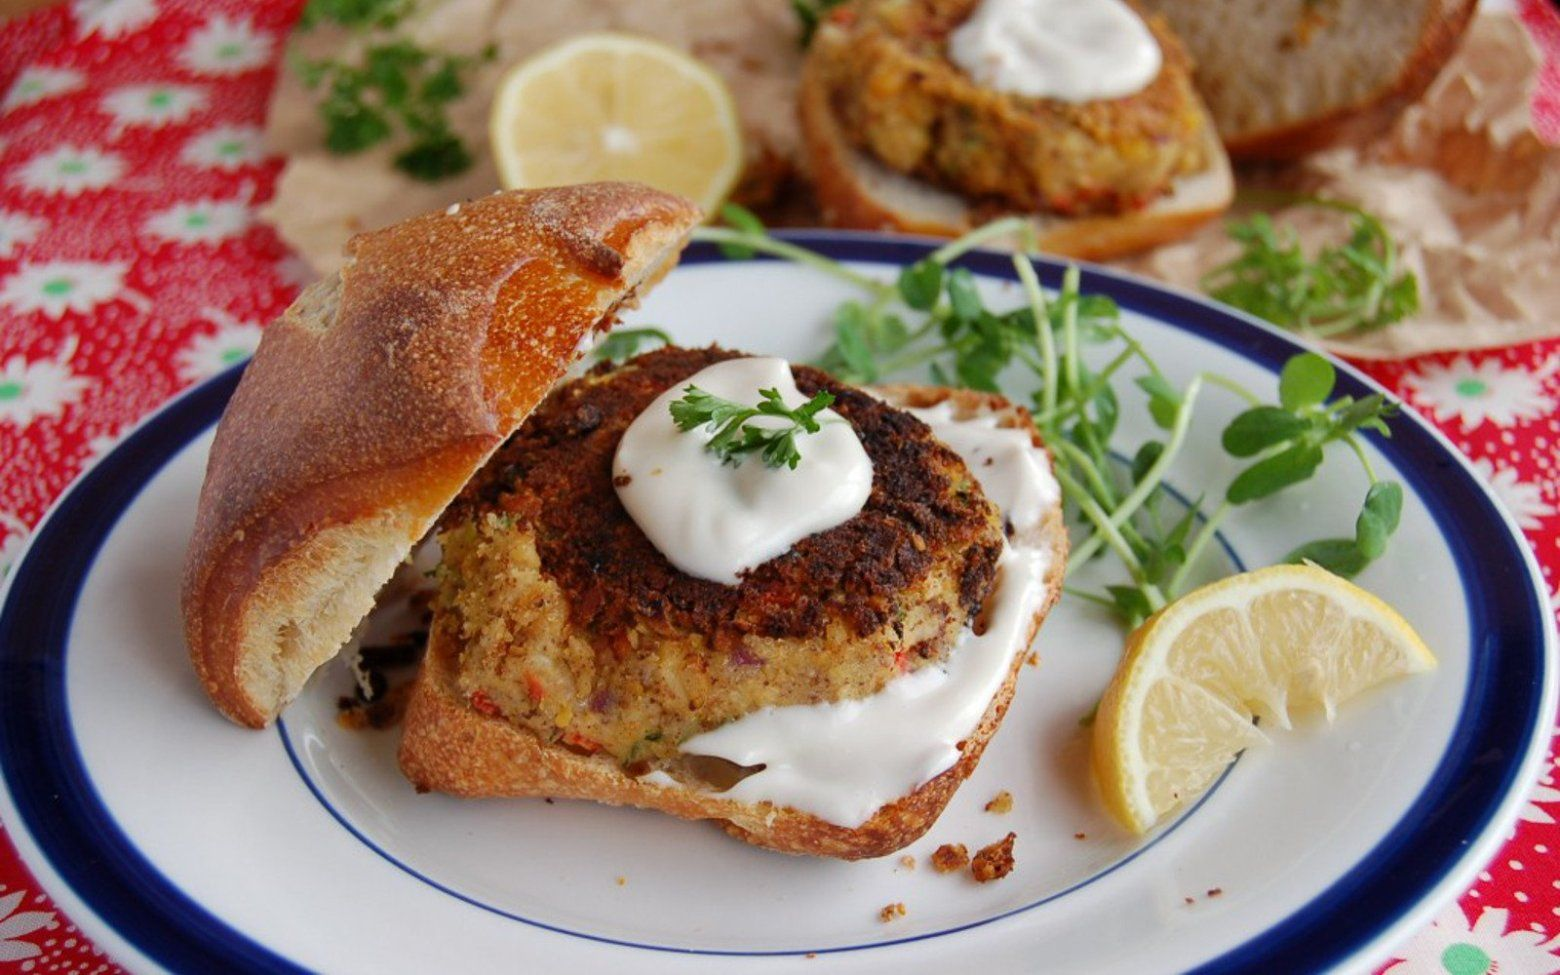 These crispy chickpea crab cakes are easy to whip up and